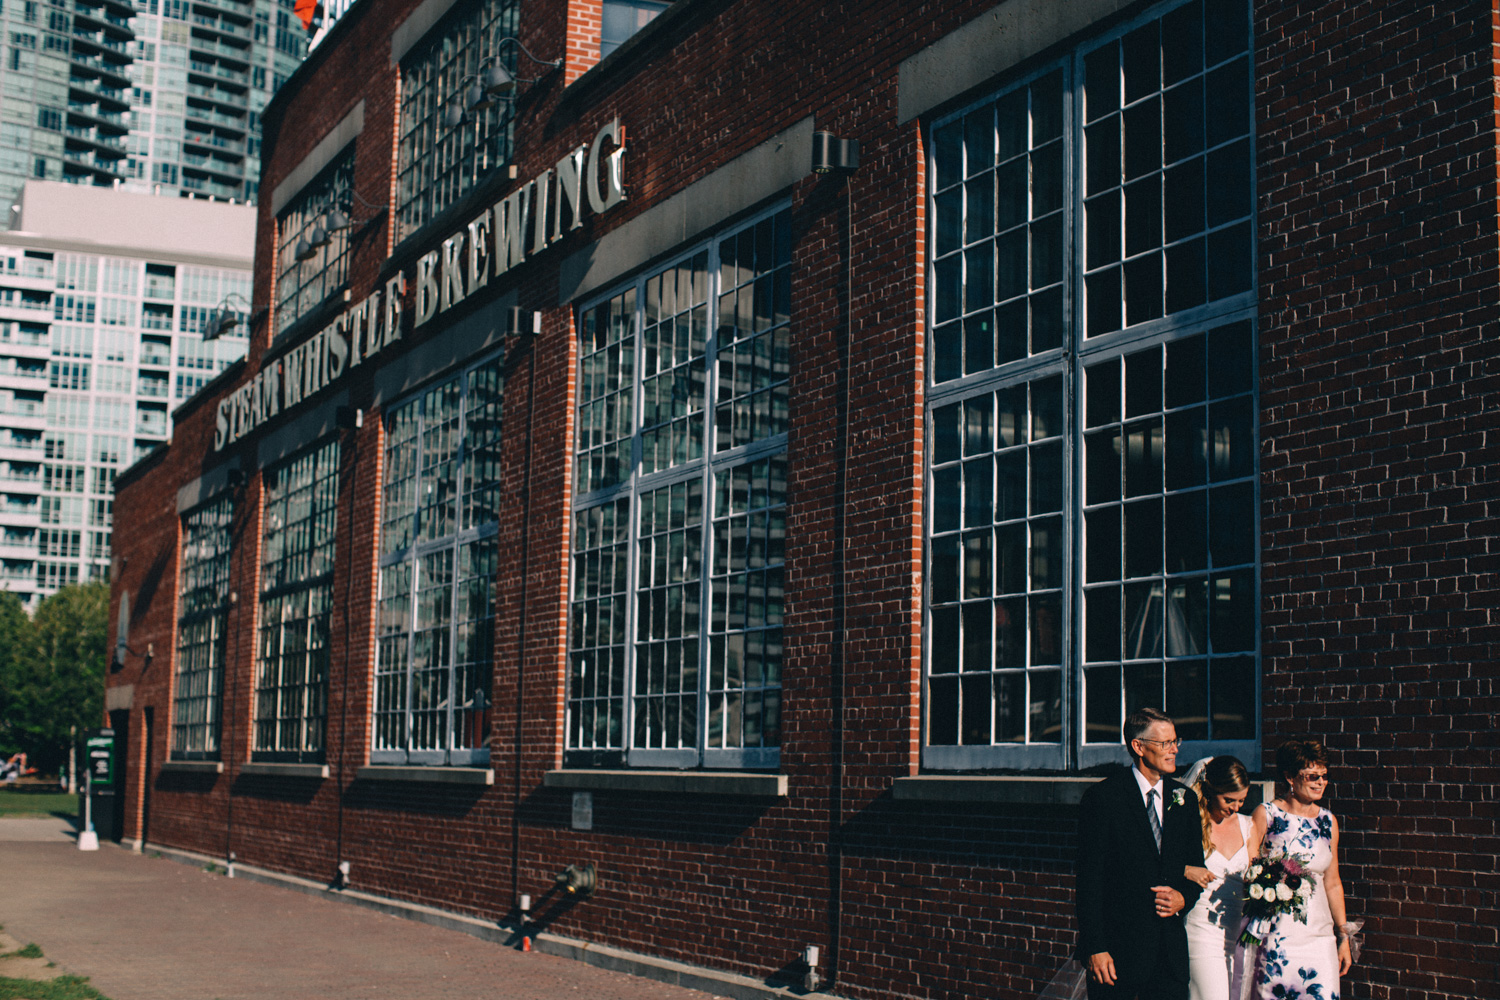 steam-whistle-brewery-wedding-photos-toronto-wedding-photography-by-sam-wong-of-artanis-collective_01036